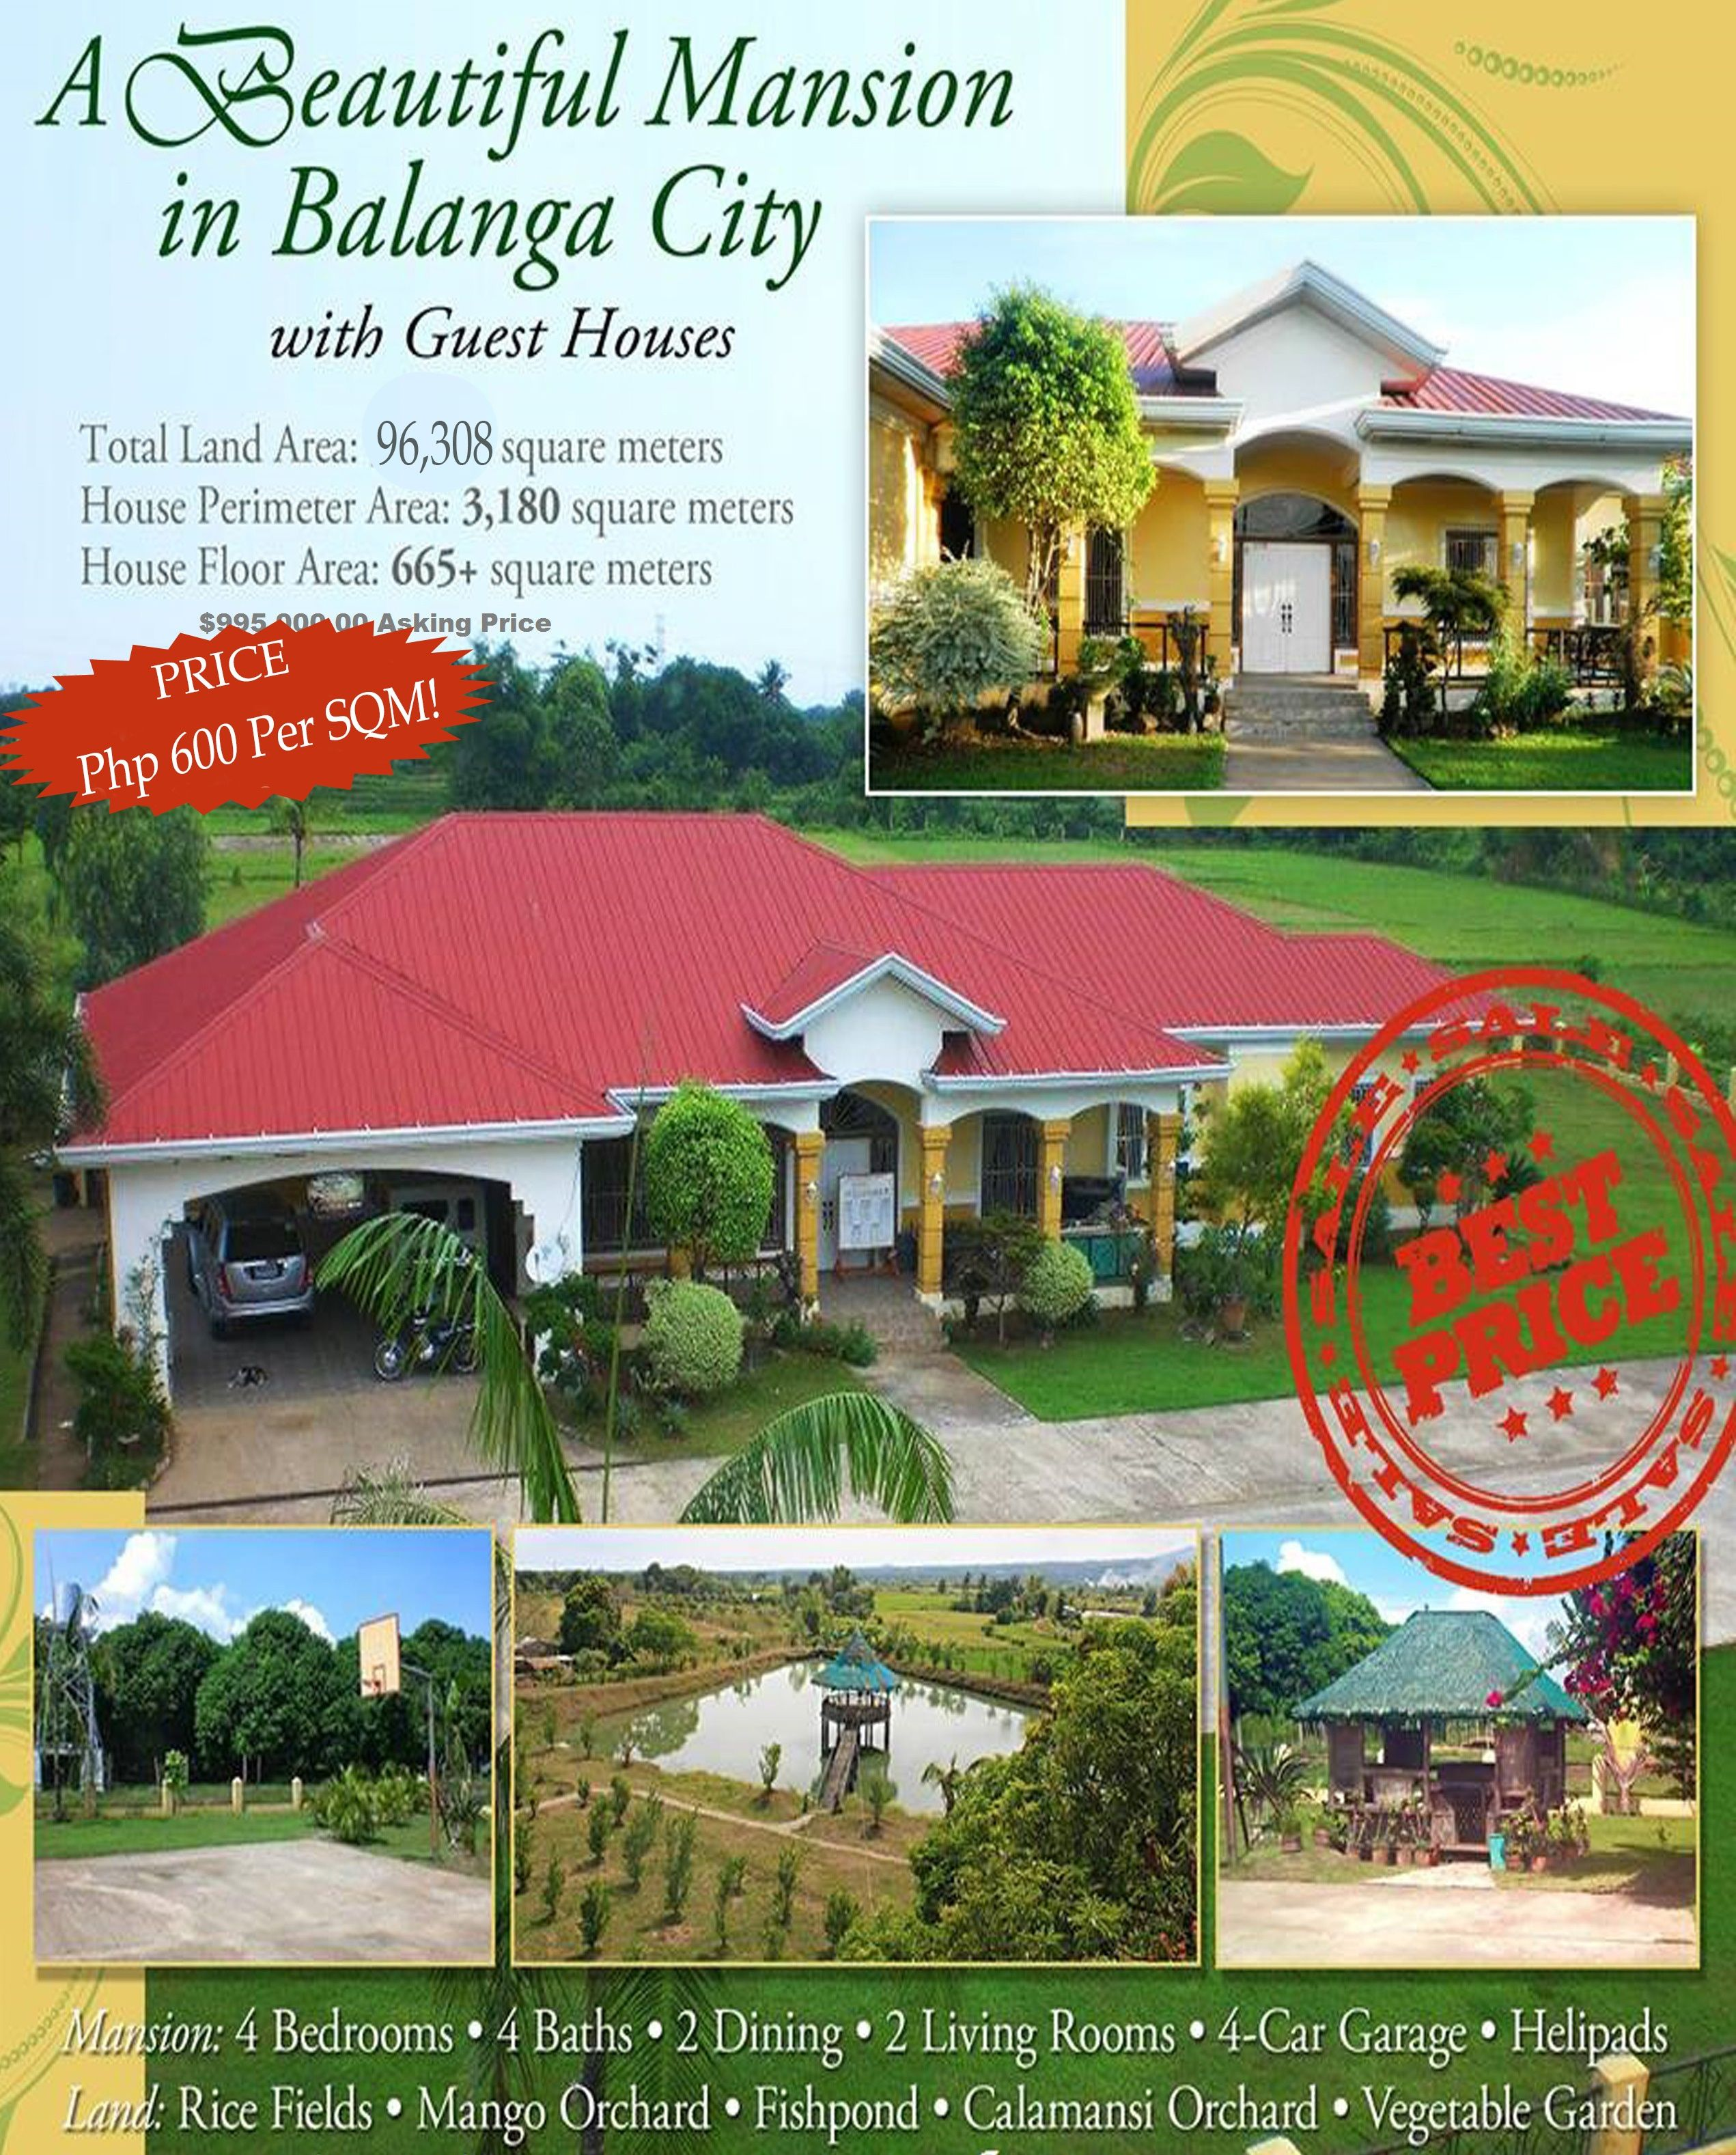 Mansion with Guest Houses in Balanga City, Bataan